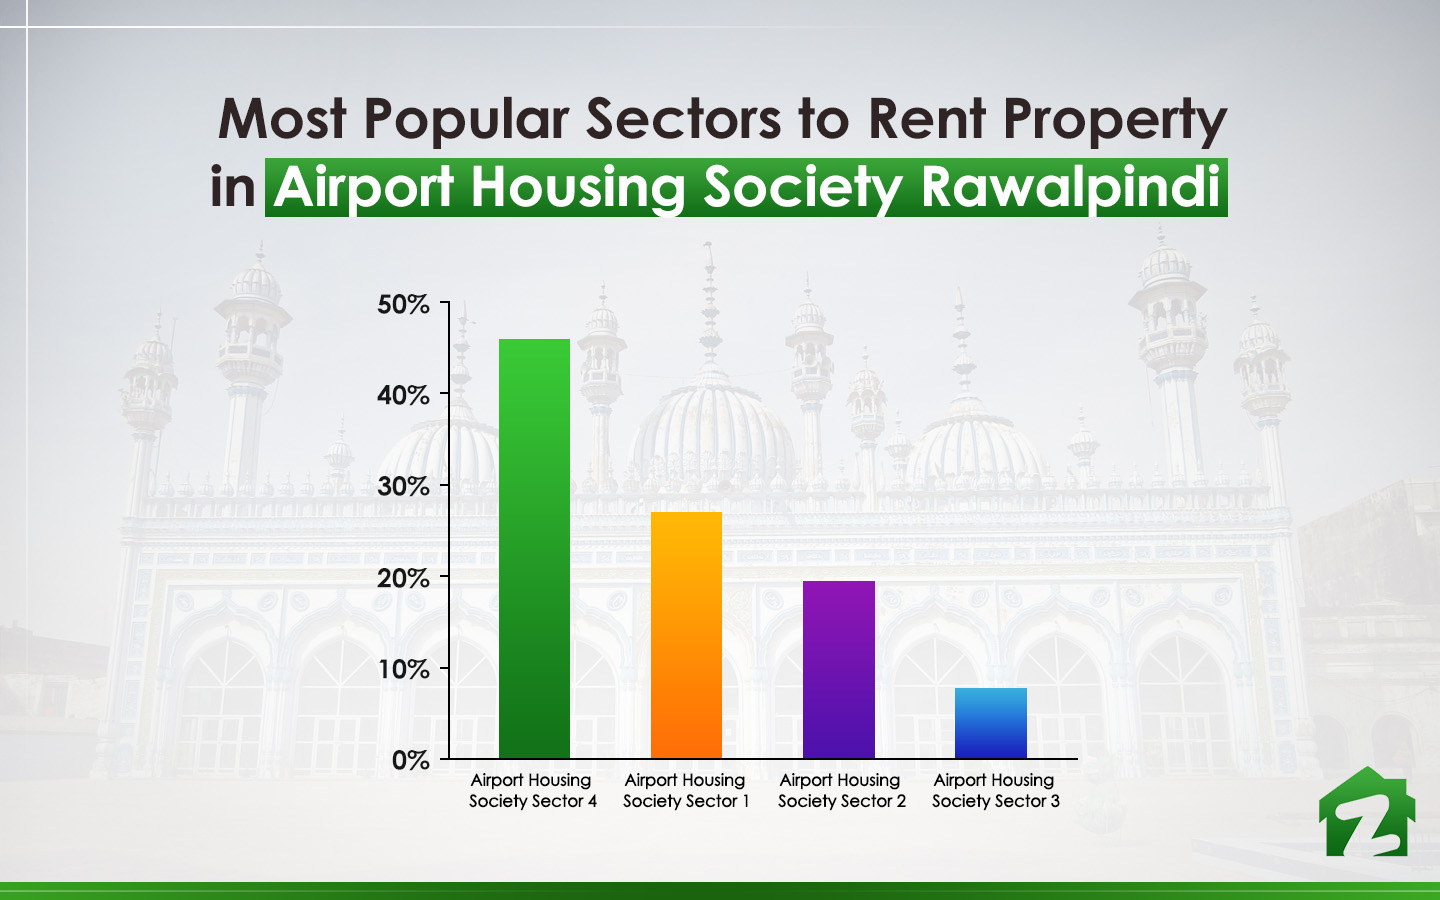 Popular Sectors to Rent Property in Airport Housing Society Rawalpindi